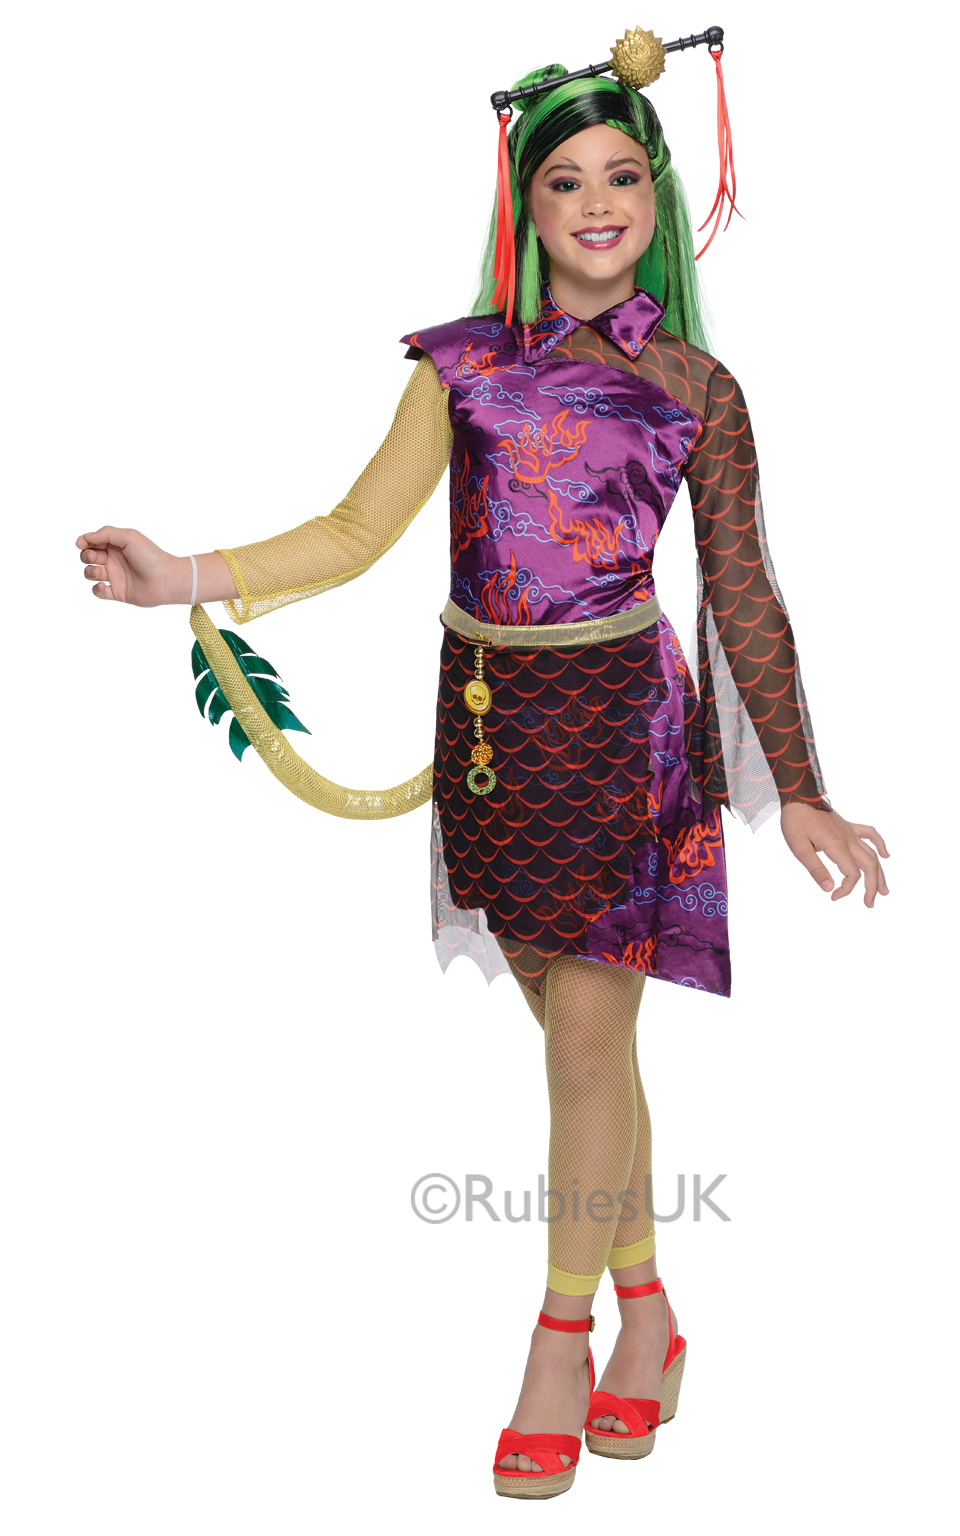 Childrens Girls Monster High Fancy Dress Costume Outfit ...